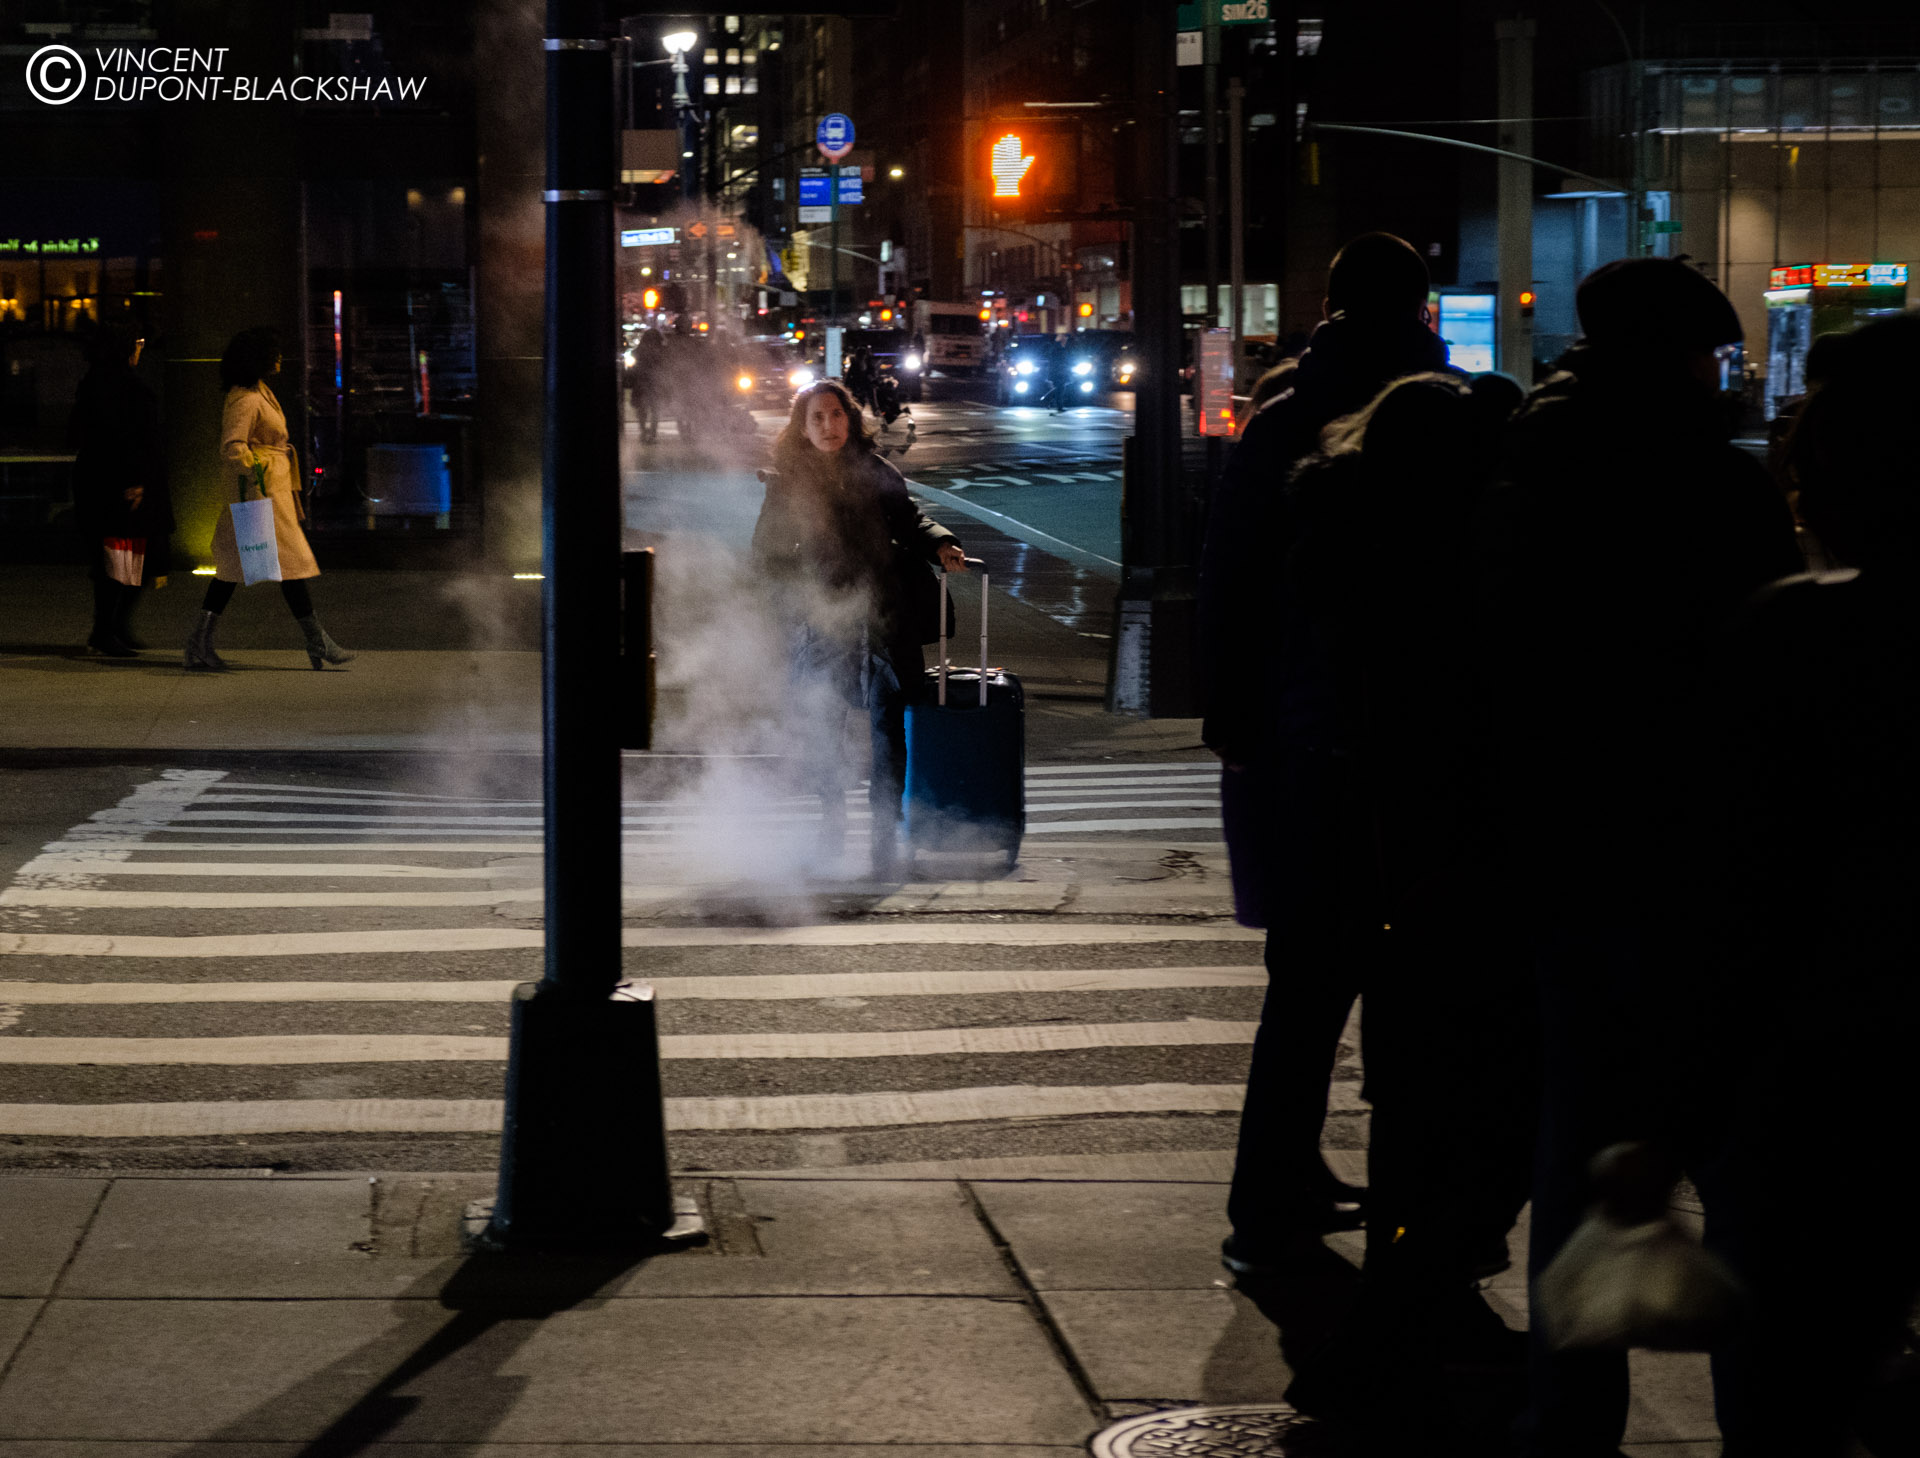 Heading Home  ///  Sample of a daily nightlife in New York